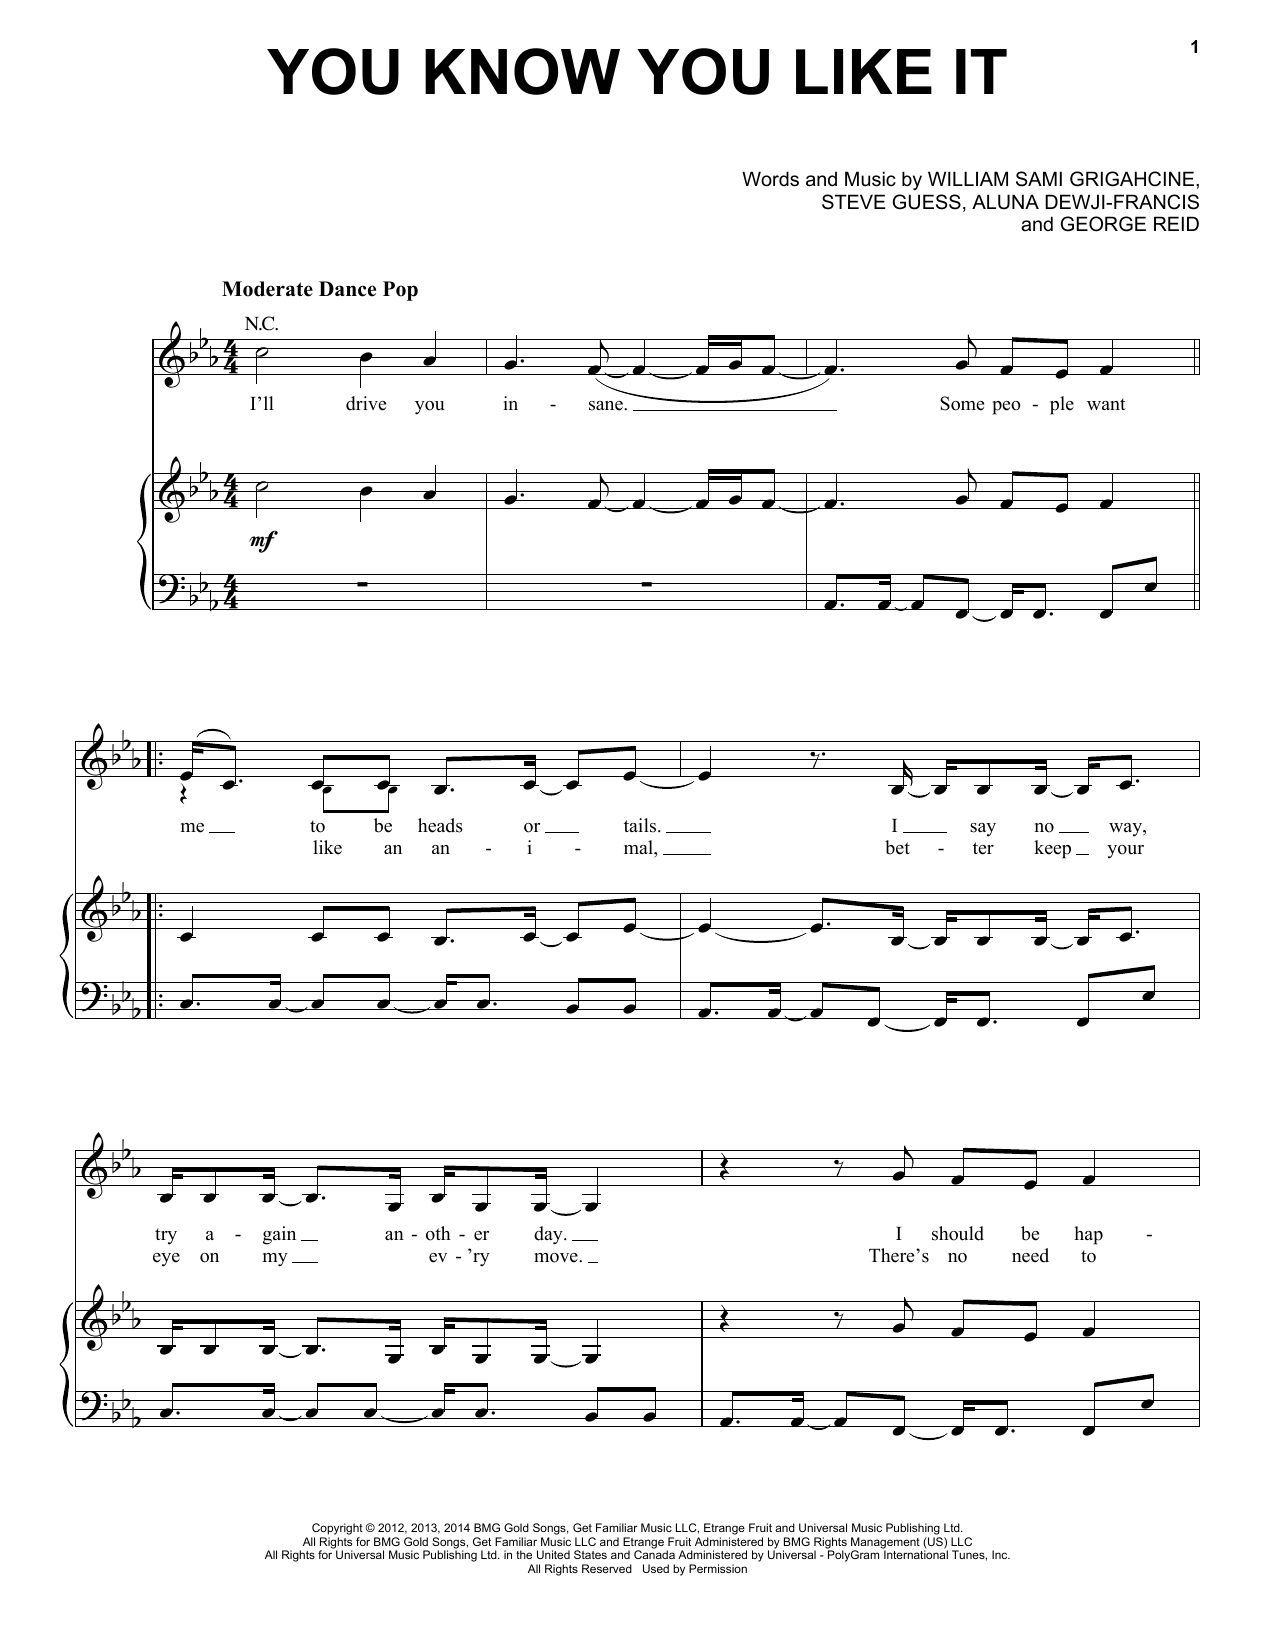 You Know You Like It Sheet Music